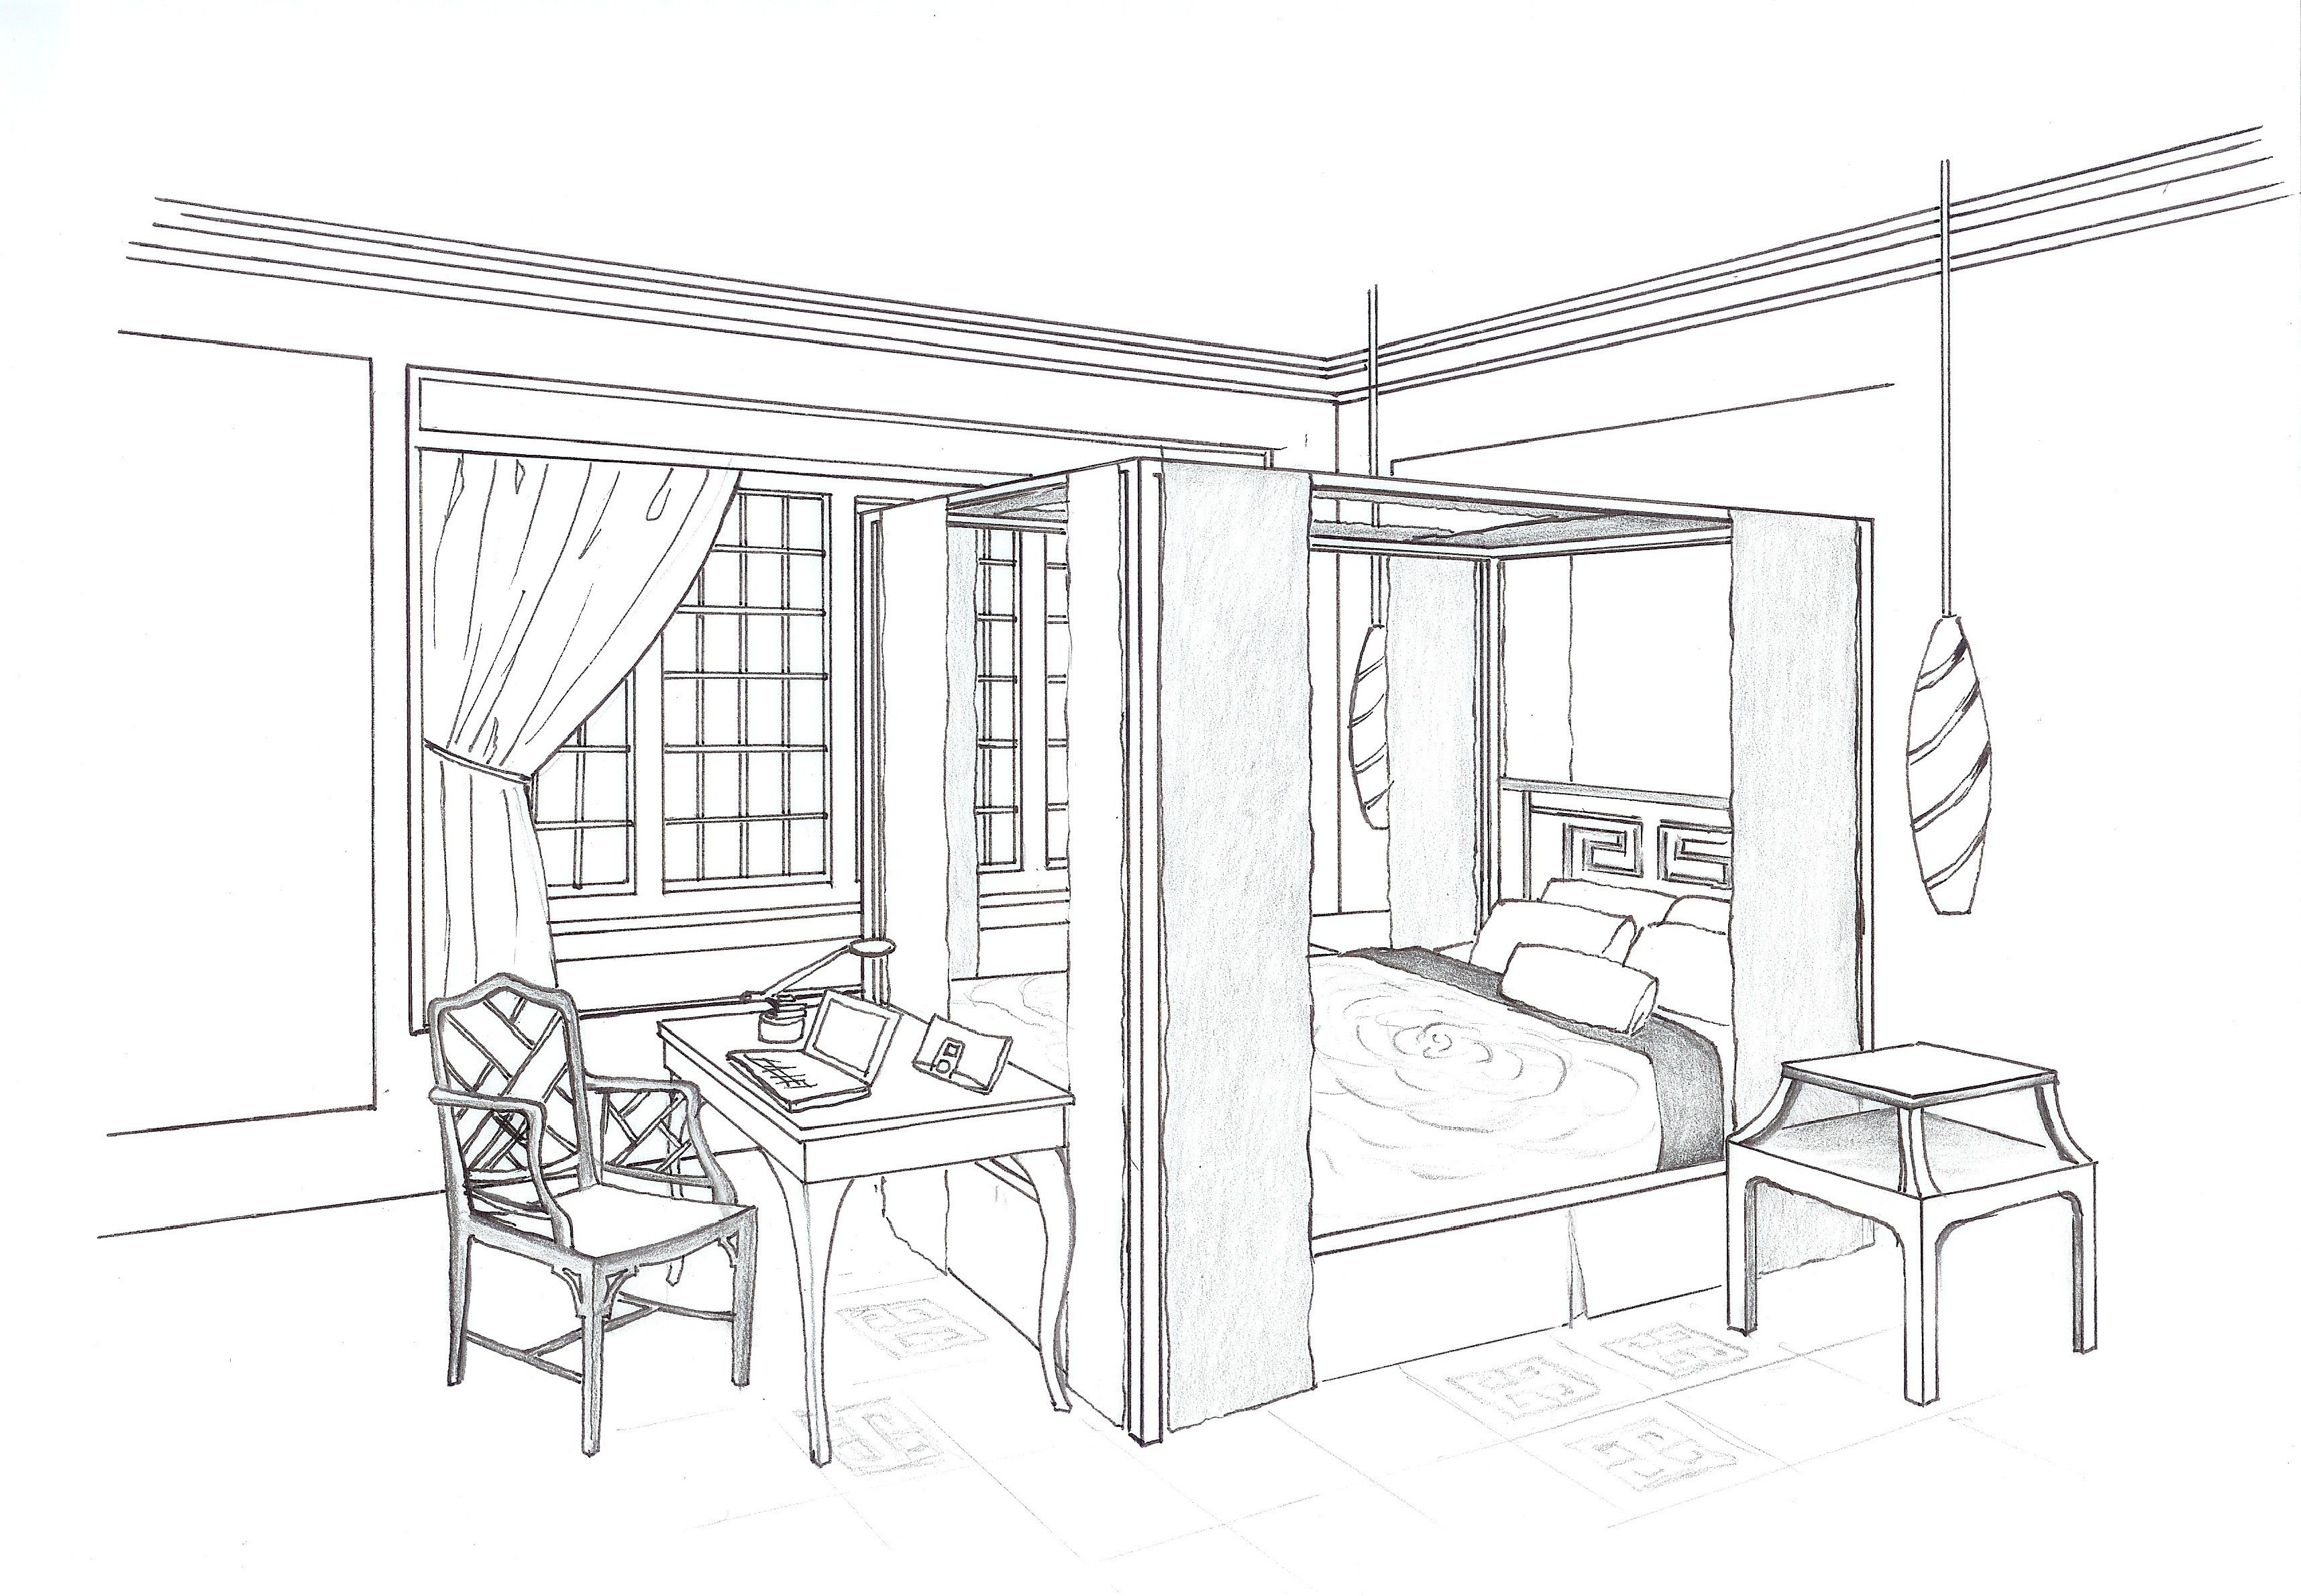 Bedroom drawing perspective - Bedroom Perspective Drawing